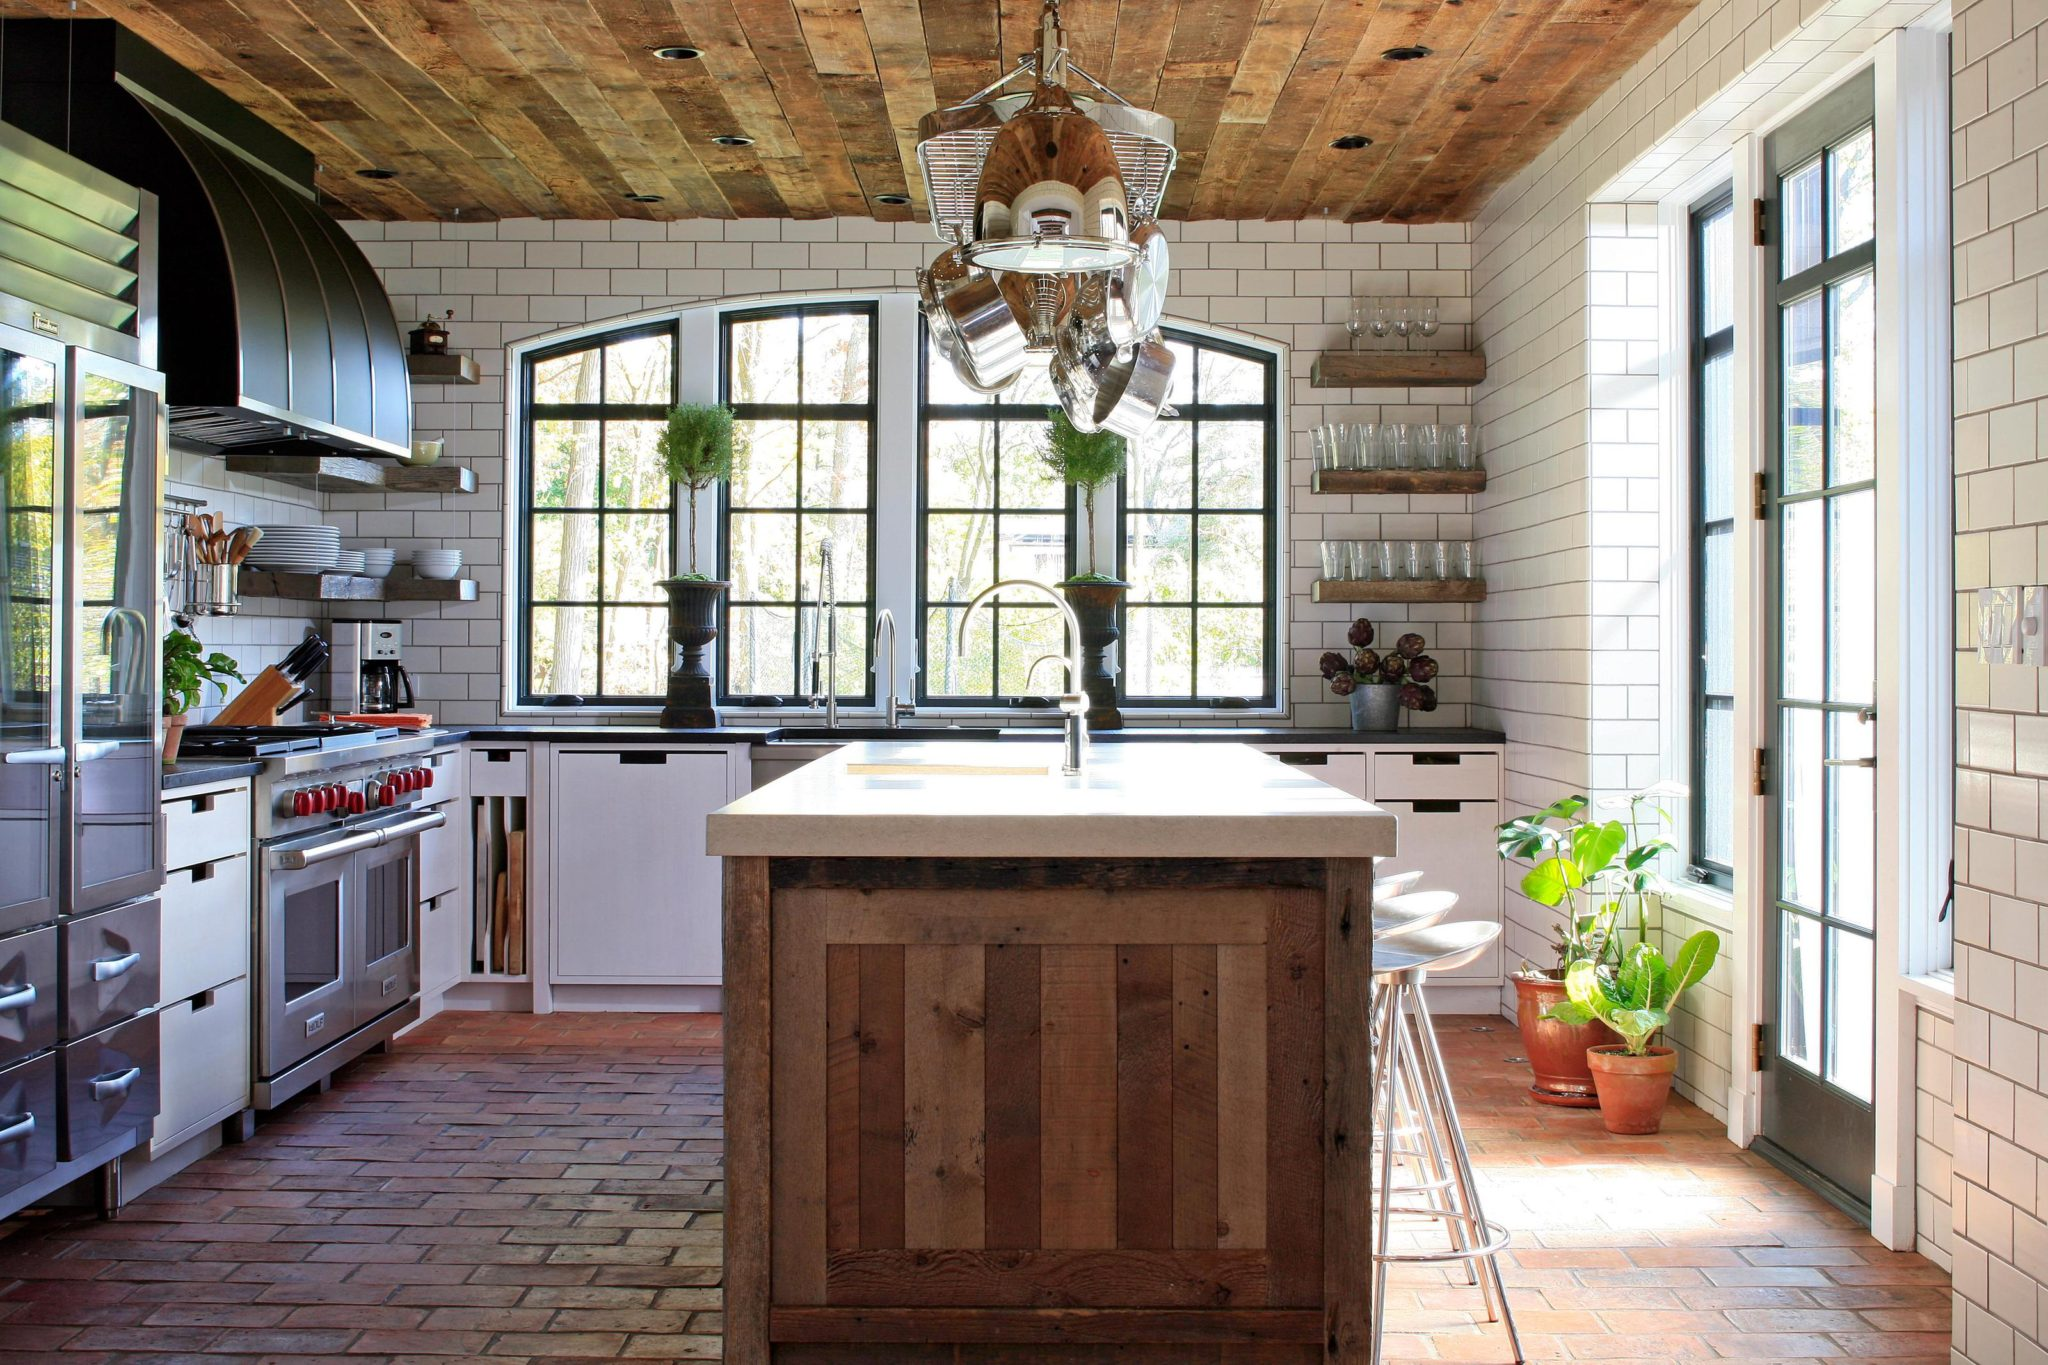 Modern European cottage kitchen with reclaimed wood. Architecture by bba ARCHITECTS